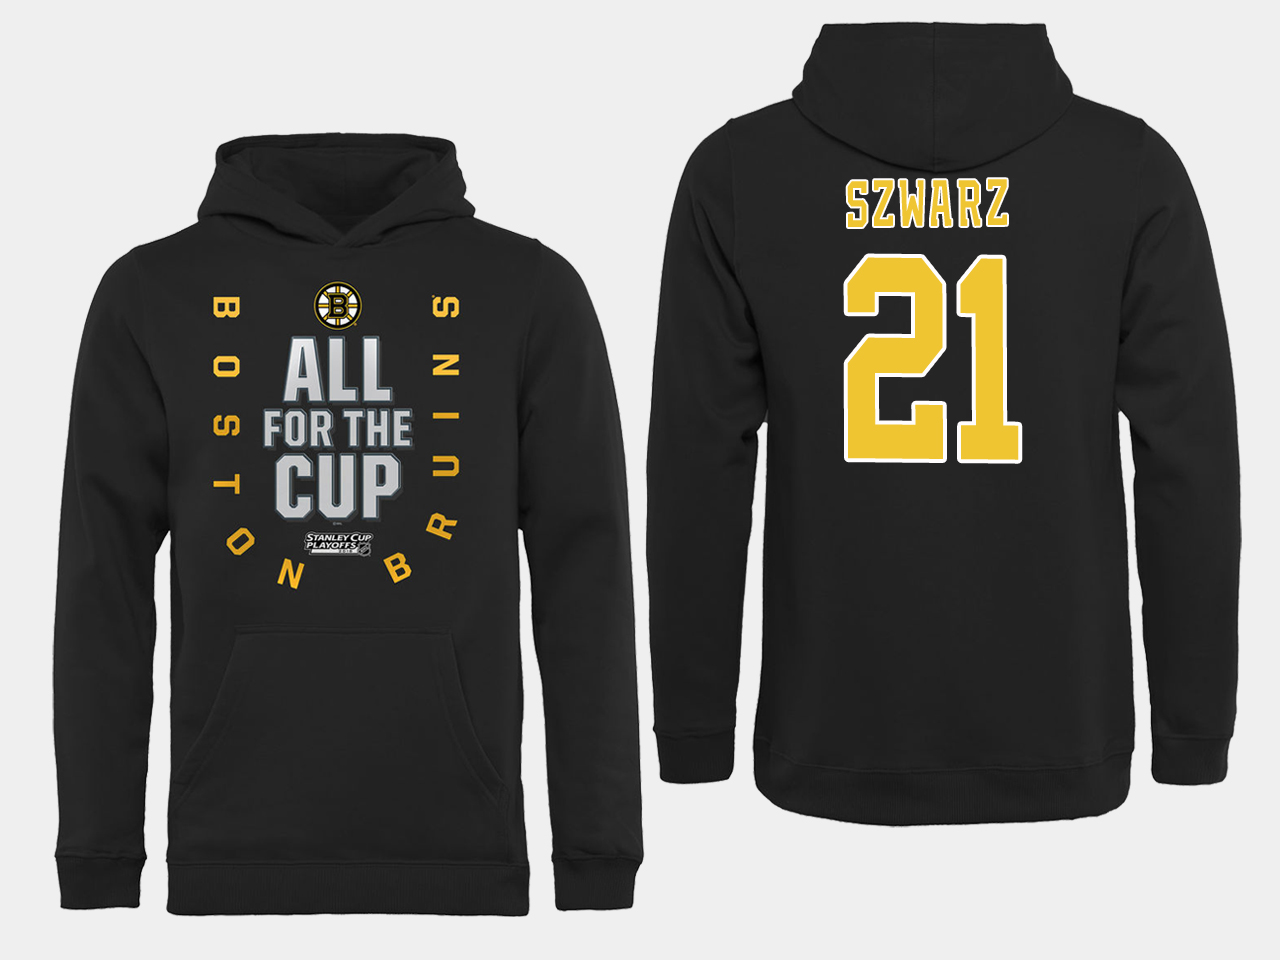 NHL Men Boston Bruins 21 Szwarz Black All for the Cup Hoodie